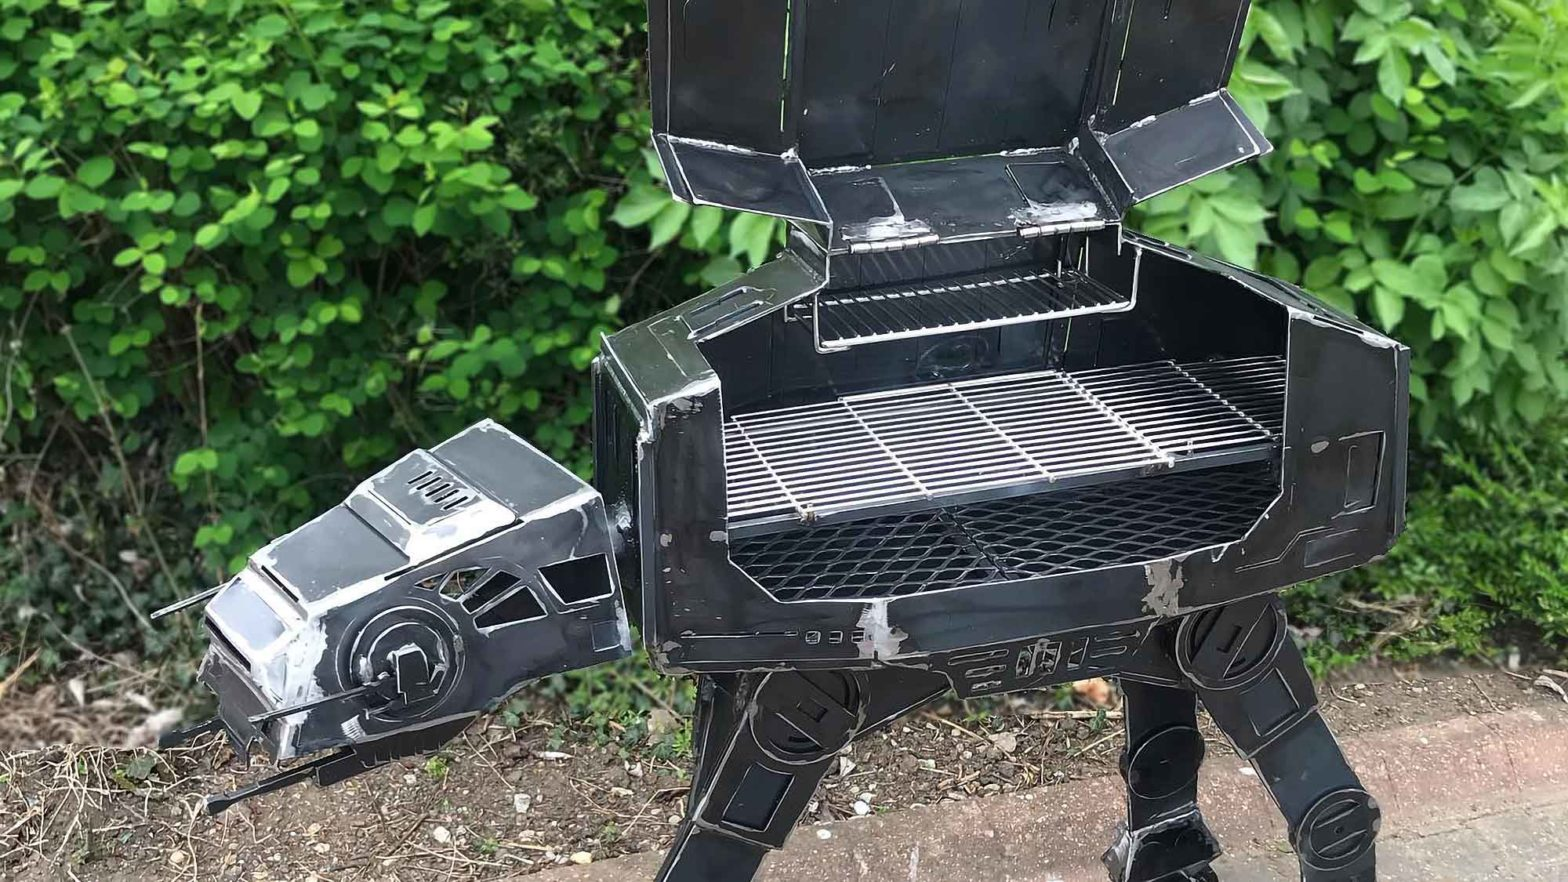 Burned by Design Star Wars AT-AT BBQ Grill/Firepit